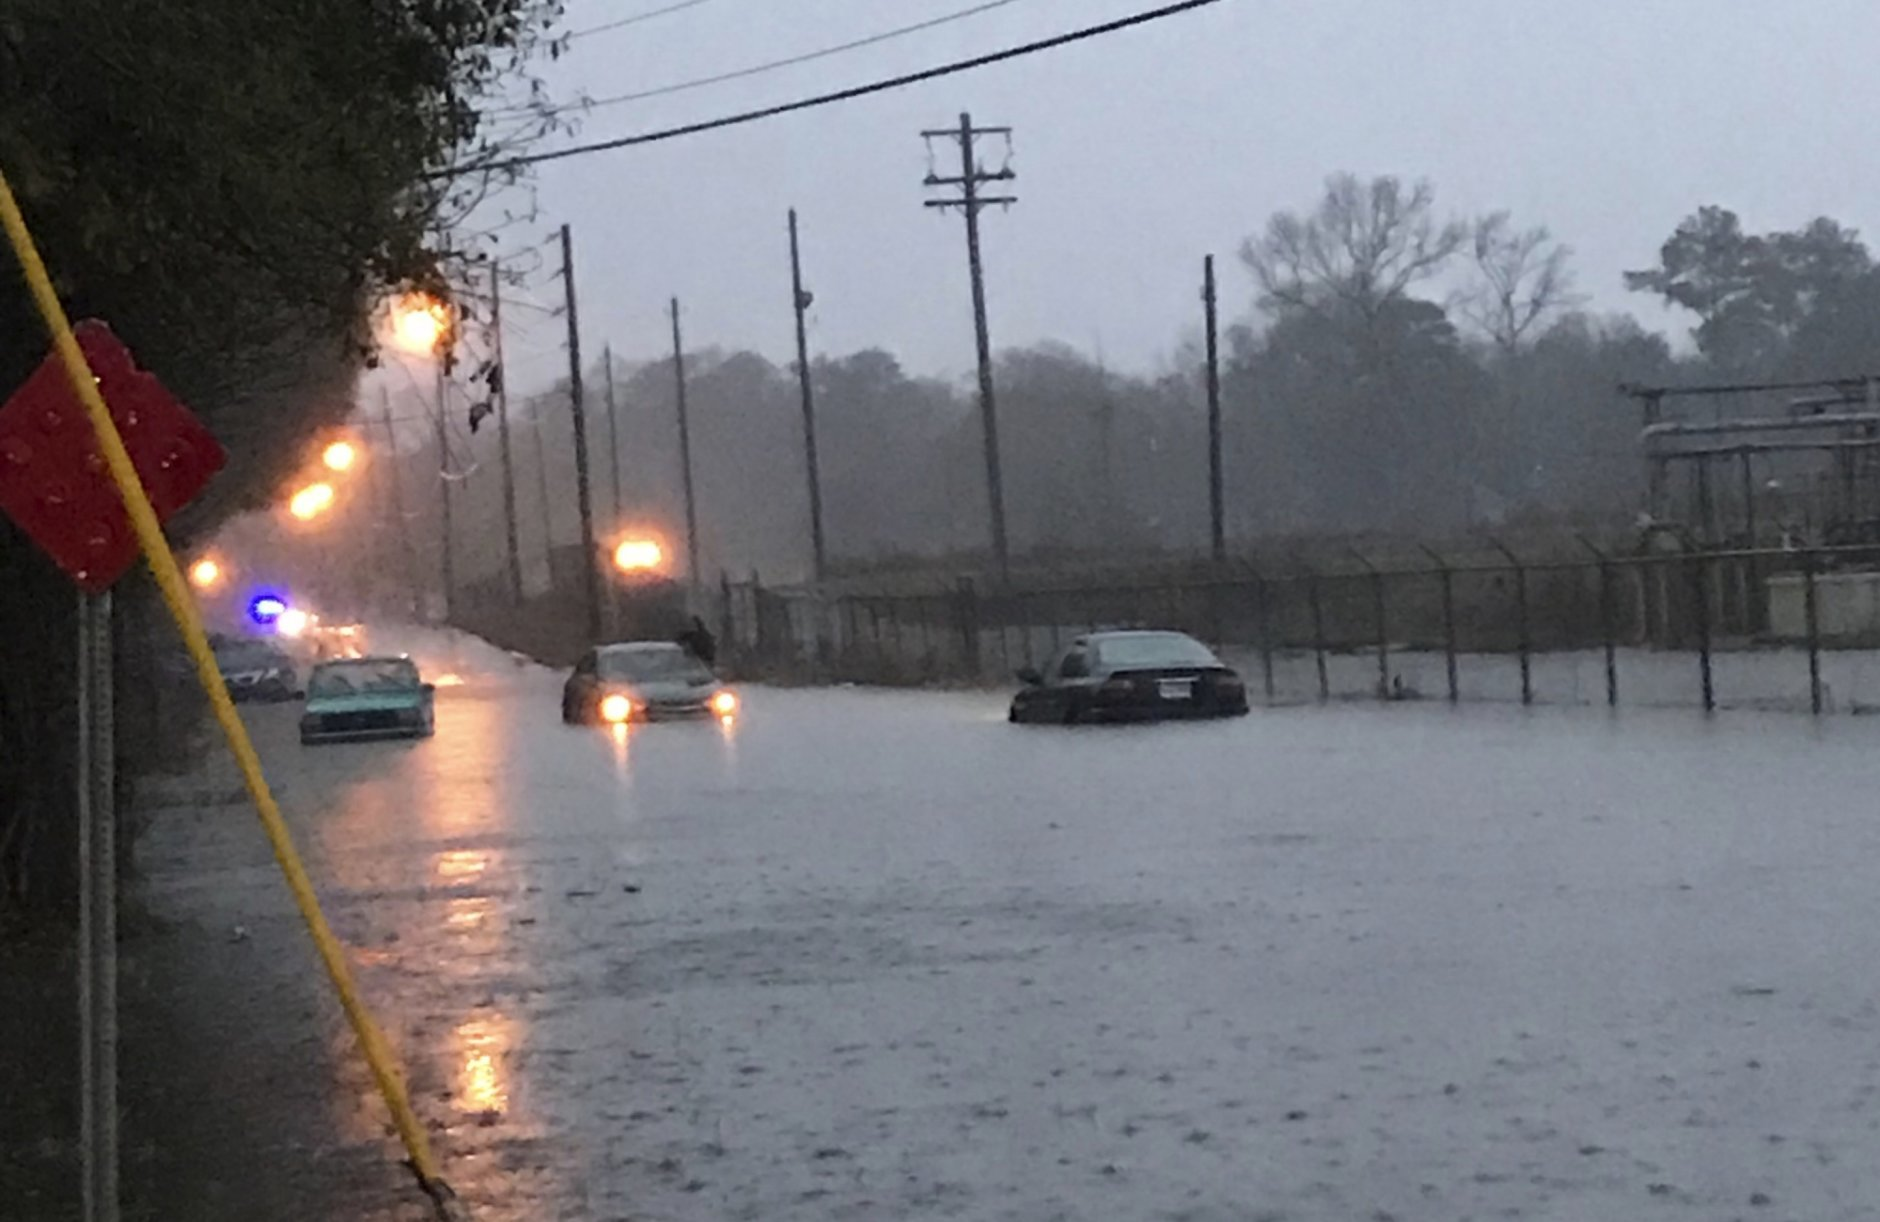 In this photo provided by the Hattiesburg Police Department, drivers attempt to drive through flash flood waters in Hattiesburg, Miss., Thursday, Dec. 27, 2018. A storm system dumped up to 12 inches of rain in Louisiana and Mississippi, Thursday afternoon through early Friday morning. (Ryan Moore/Hattiesburg Police Department via AP)